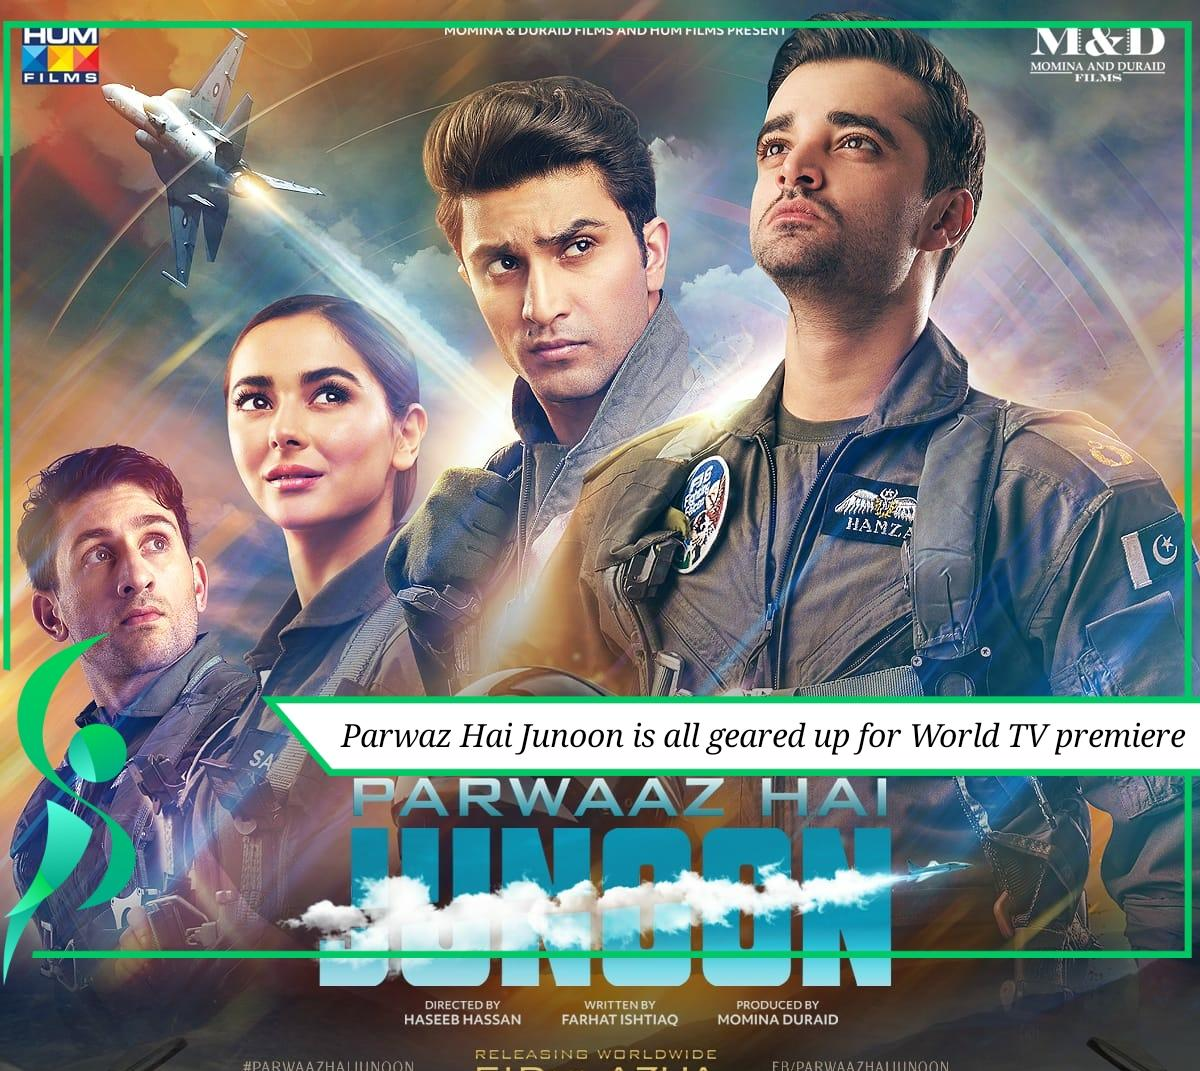 Parwaz Hai Junoon is all geared up for World TV premiere.